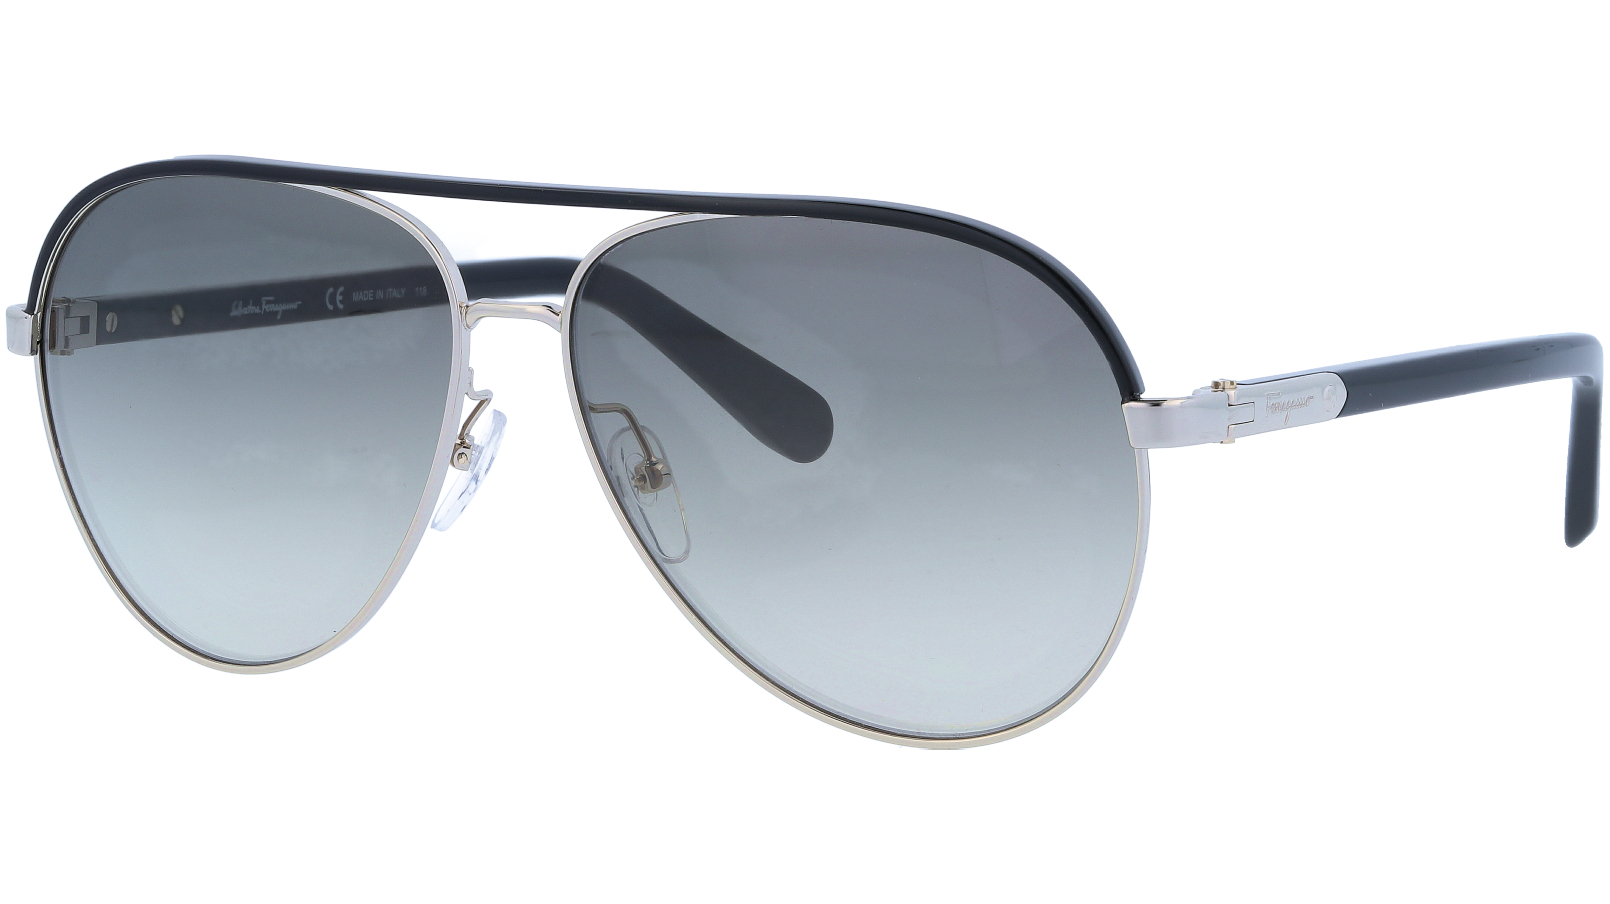 SALVATORE FERRAGAMO SF163S 703 60 SHINY Sunglasses